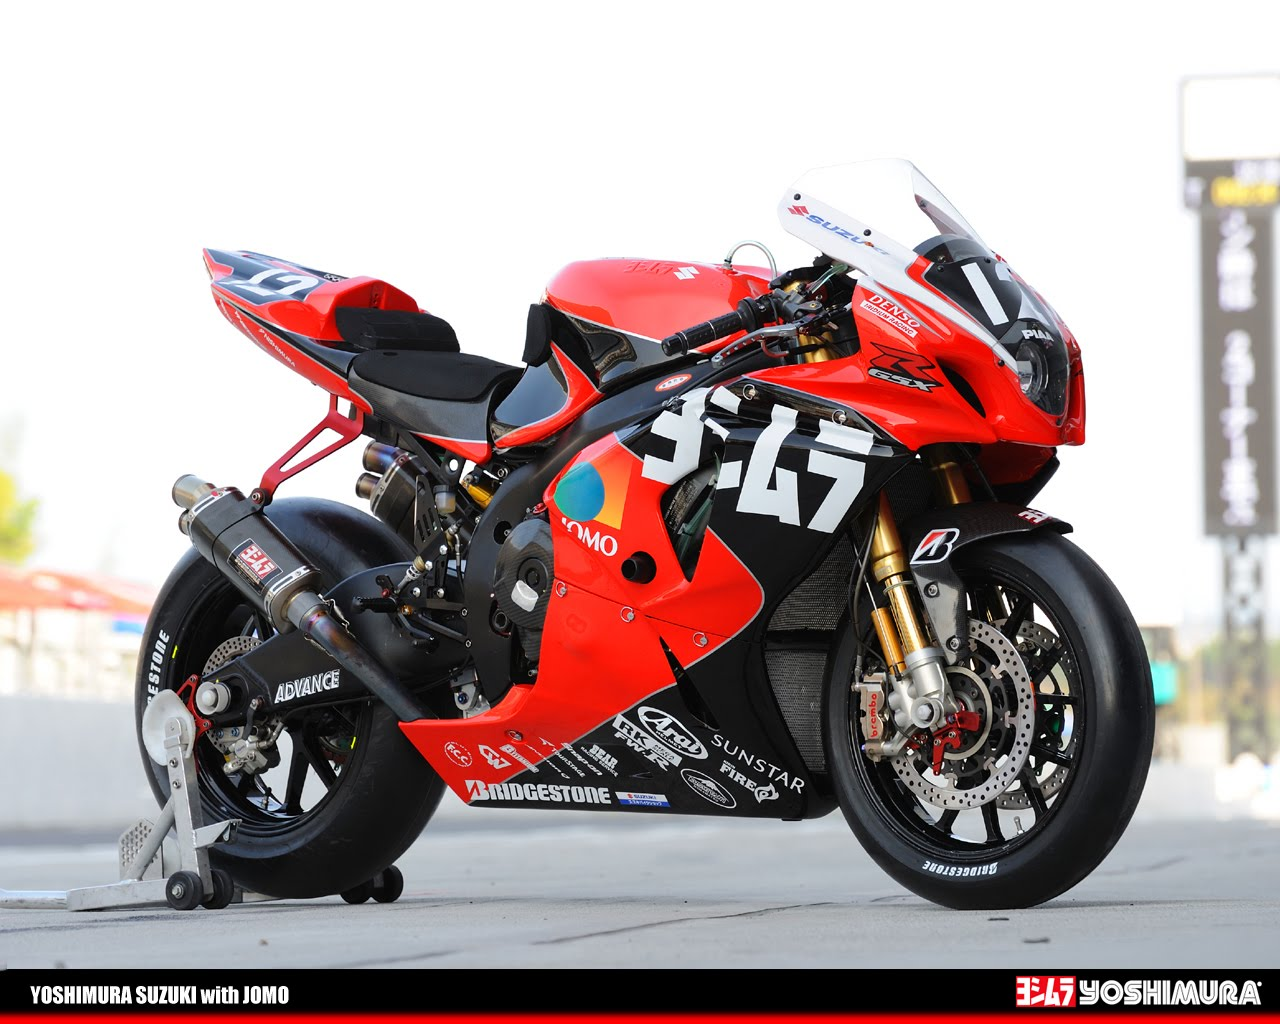 racing caf yoshimura gsx r 1000 k10 8 hours suzuka 2010. Black Bedroom Furniture Sets. Home Design Ideas